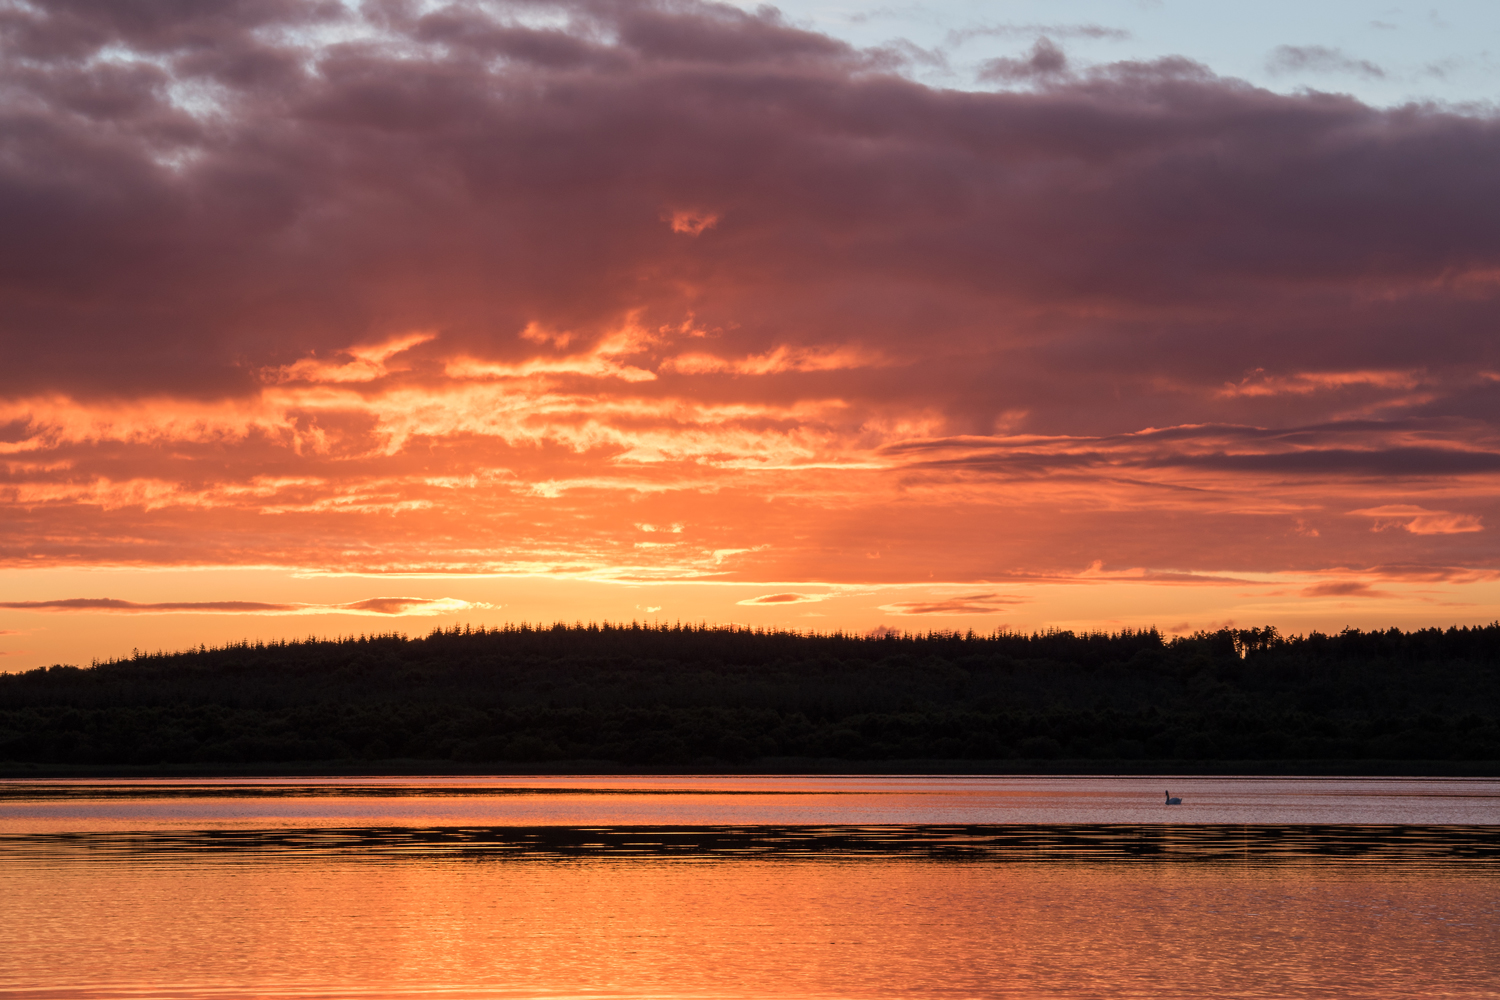 Sunset over Lough Erne and Kesh Forest